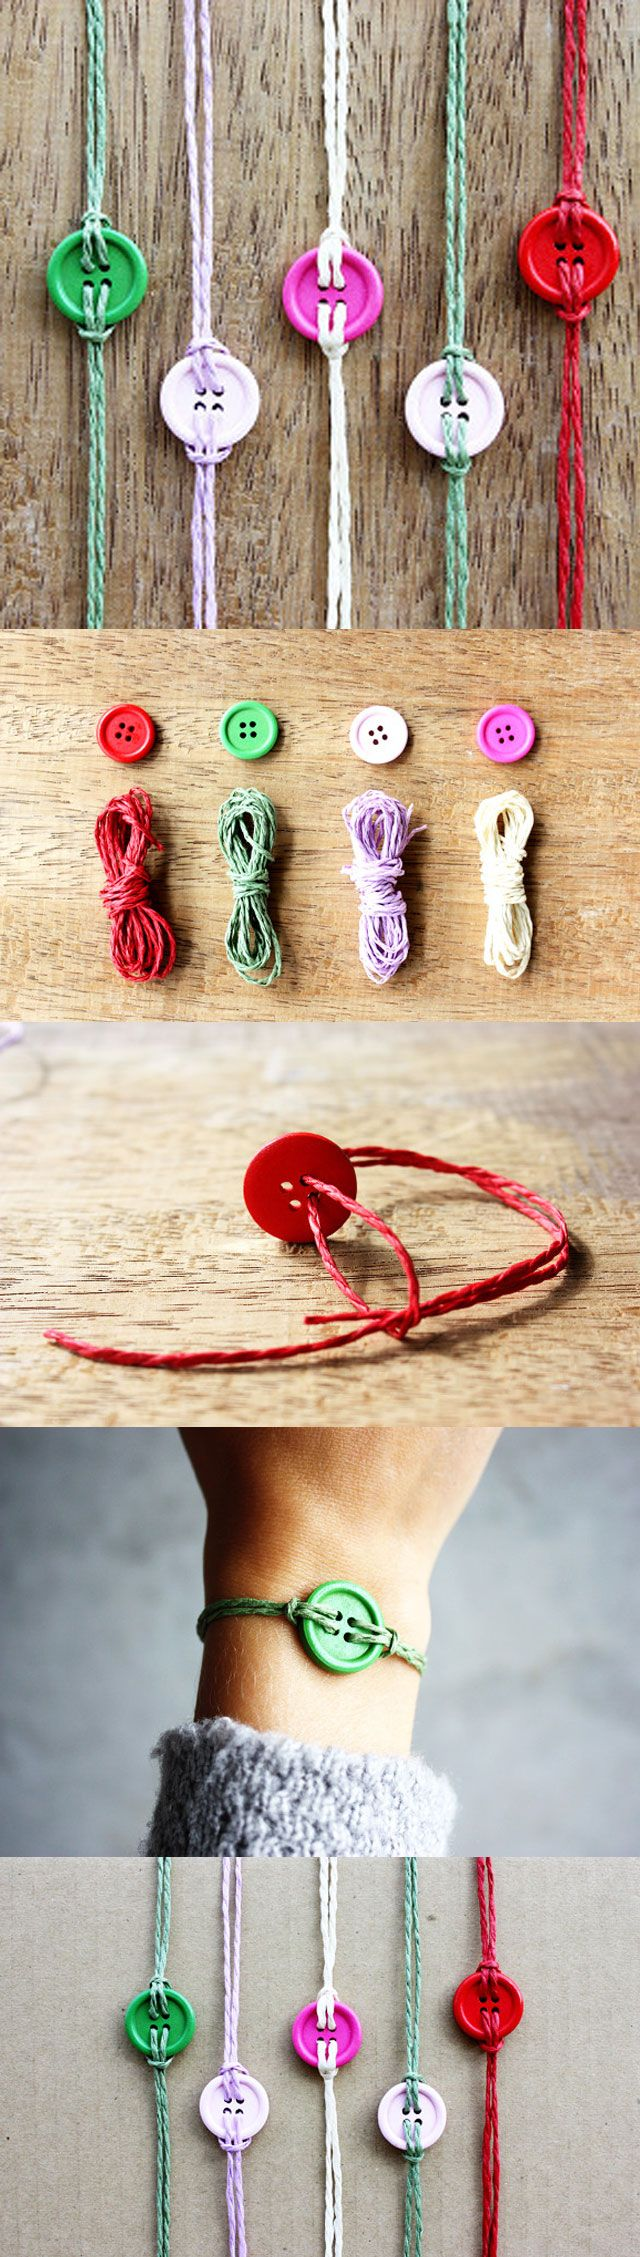 DIY Button Bracelet. Easy and Colorful, make some and wear together. My Elvi…                                                                                                                                                                                 Más